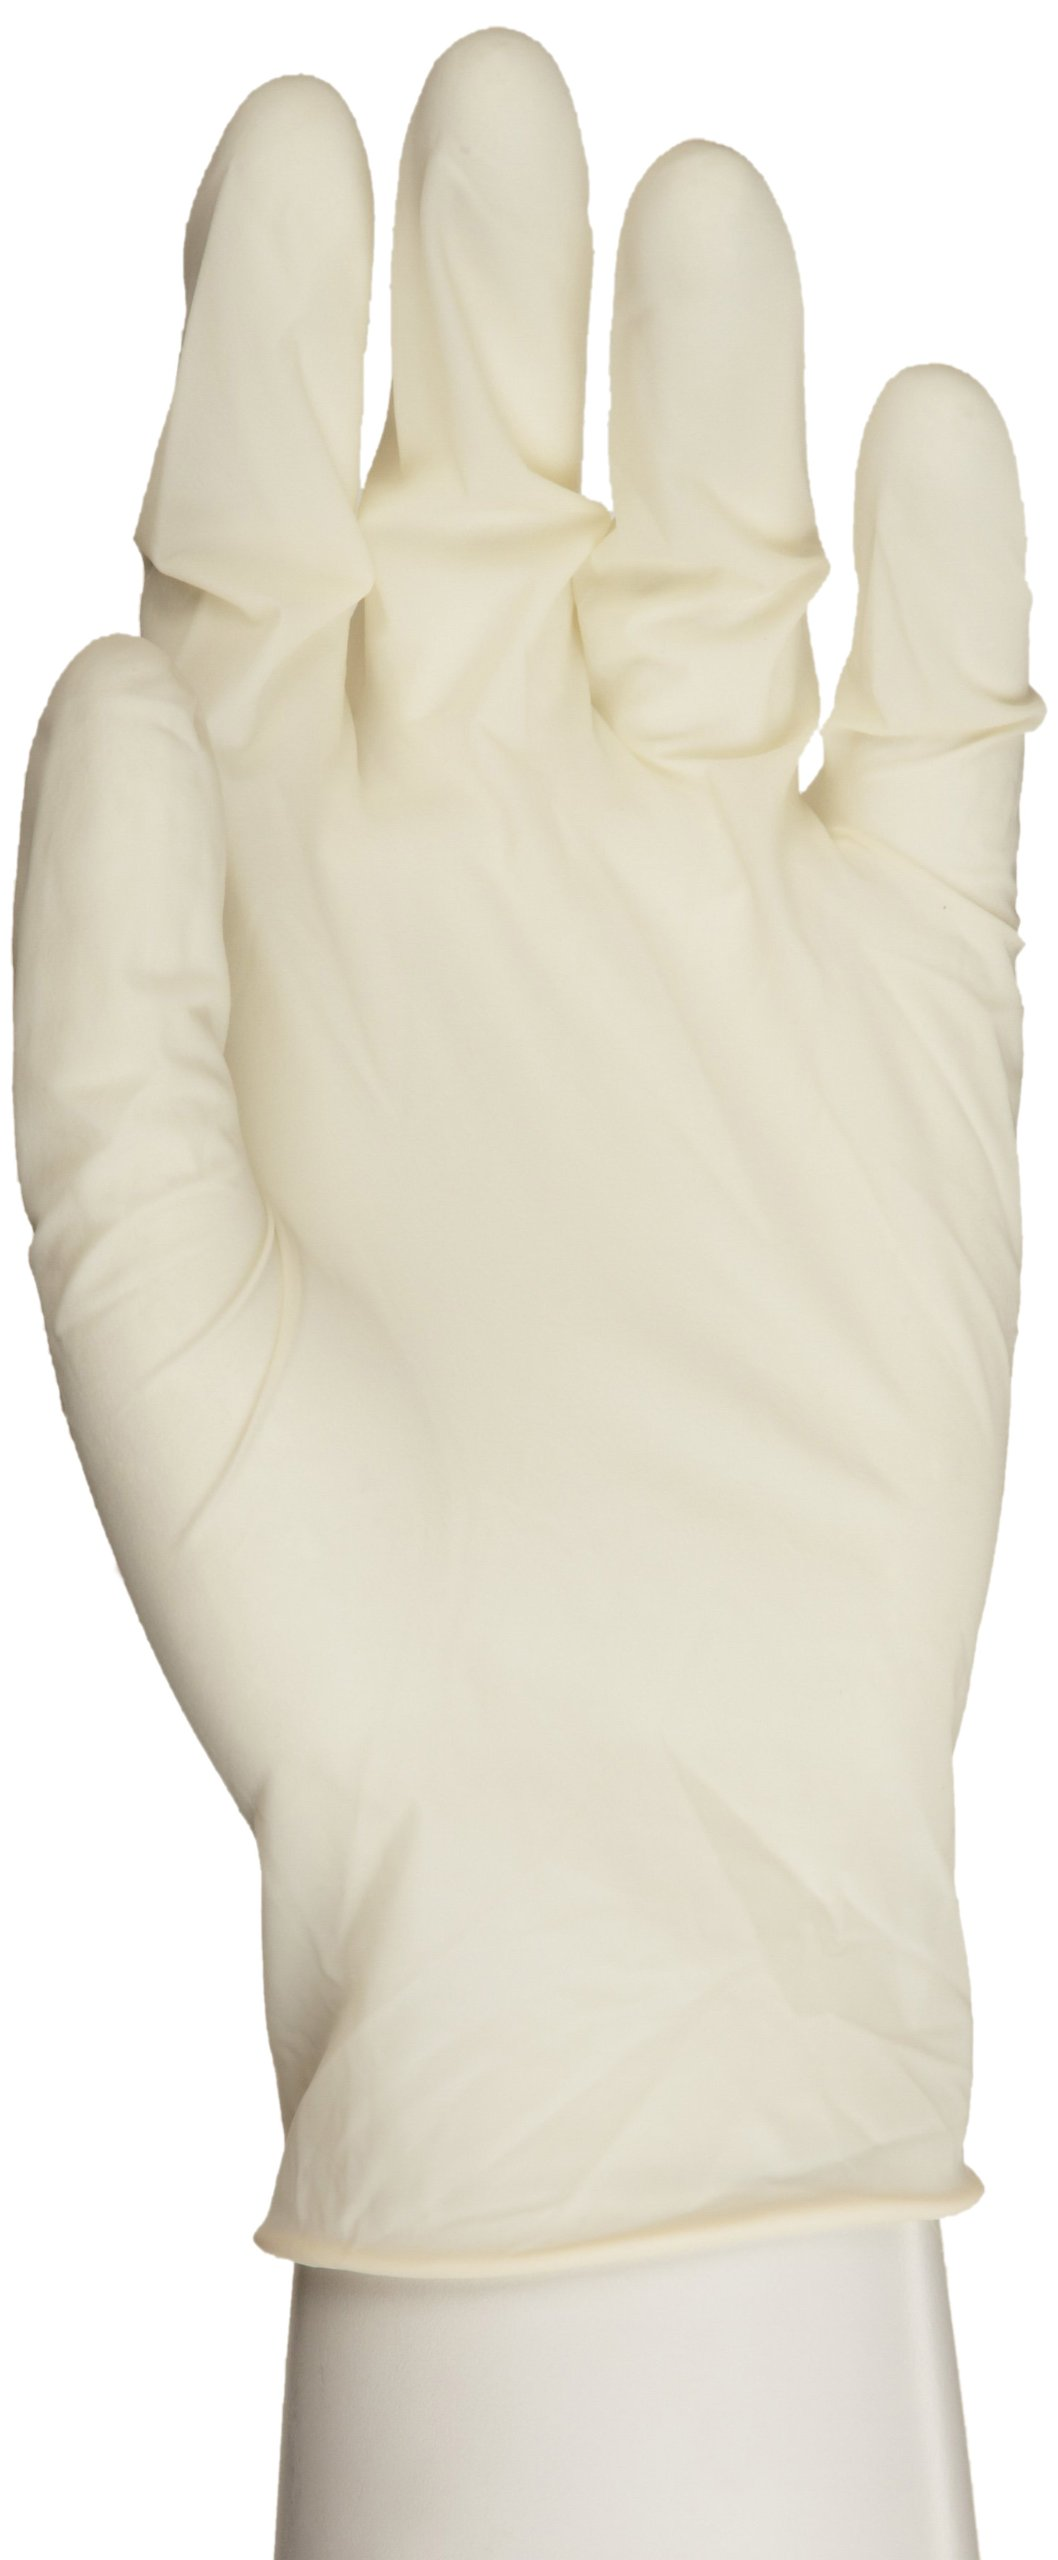 Microflex ComfortGrip Latex Glove, Powder Free, 9.6'' Length, 5 mils Thick, X-Large (Pack of 1000)